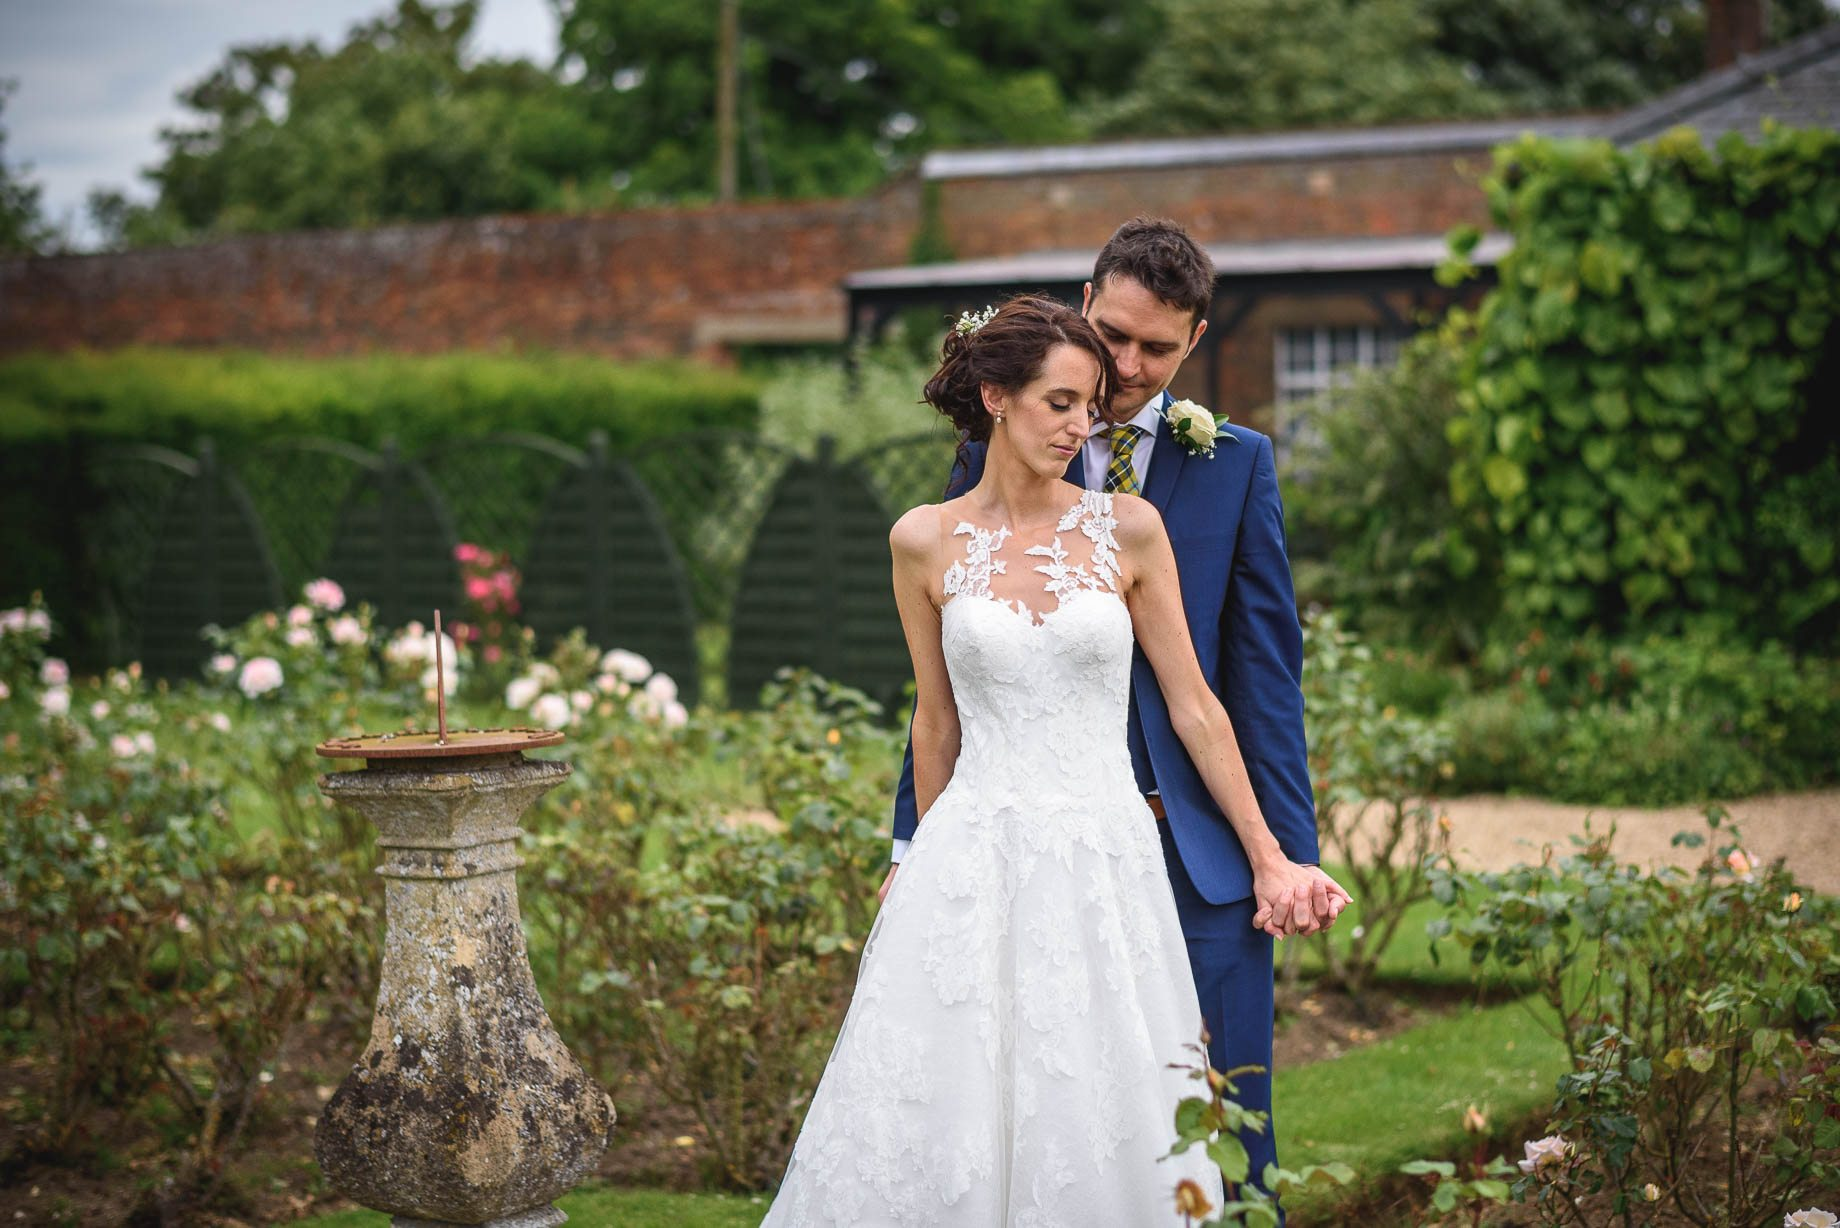 Hertfordshire wedding photography - Sarah and Stephen by Guy Collier Photography (138 of 161)